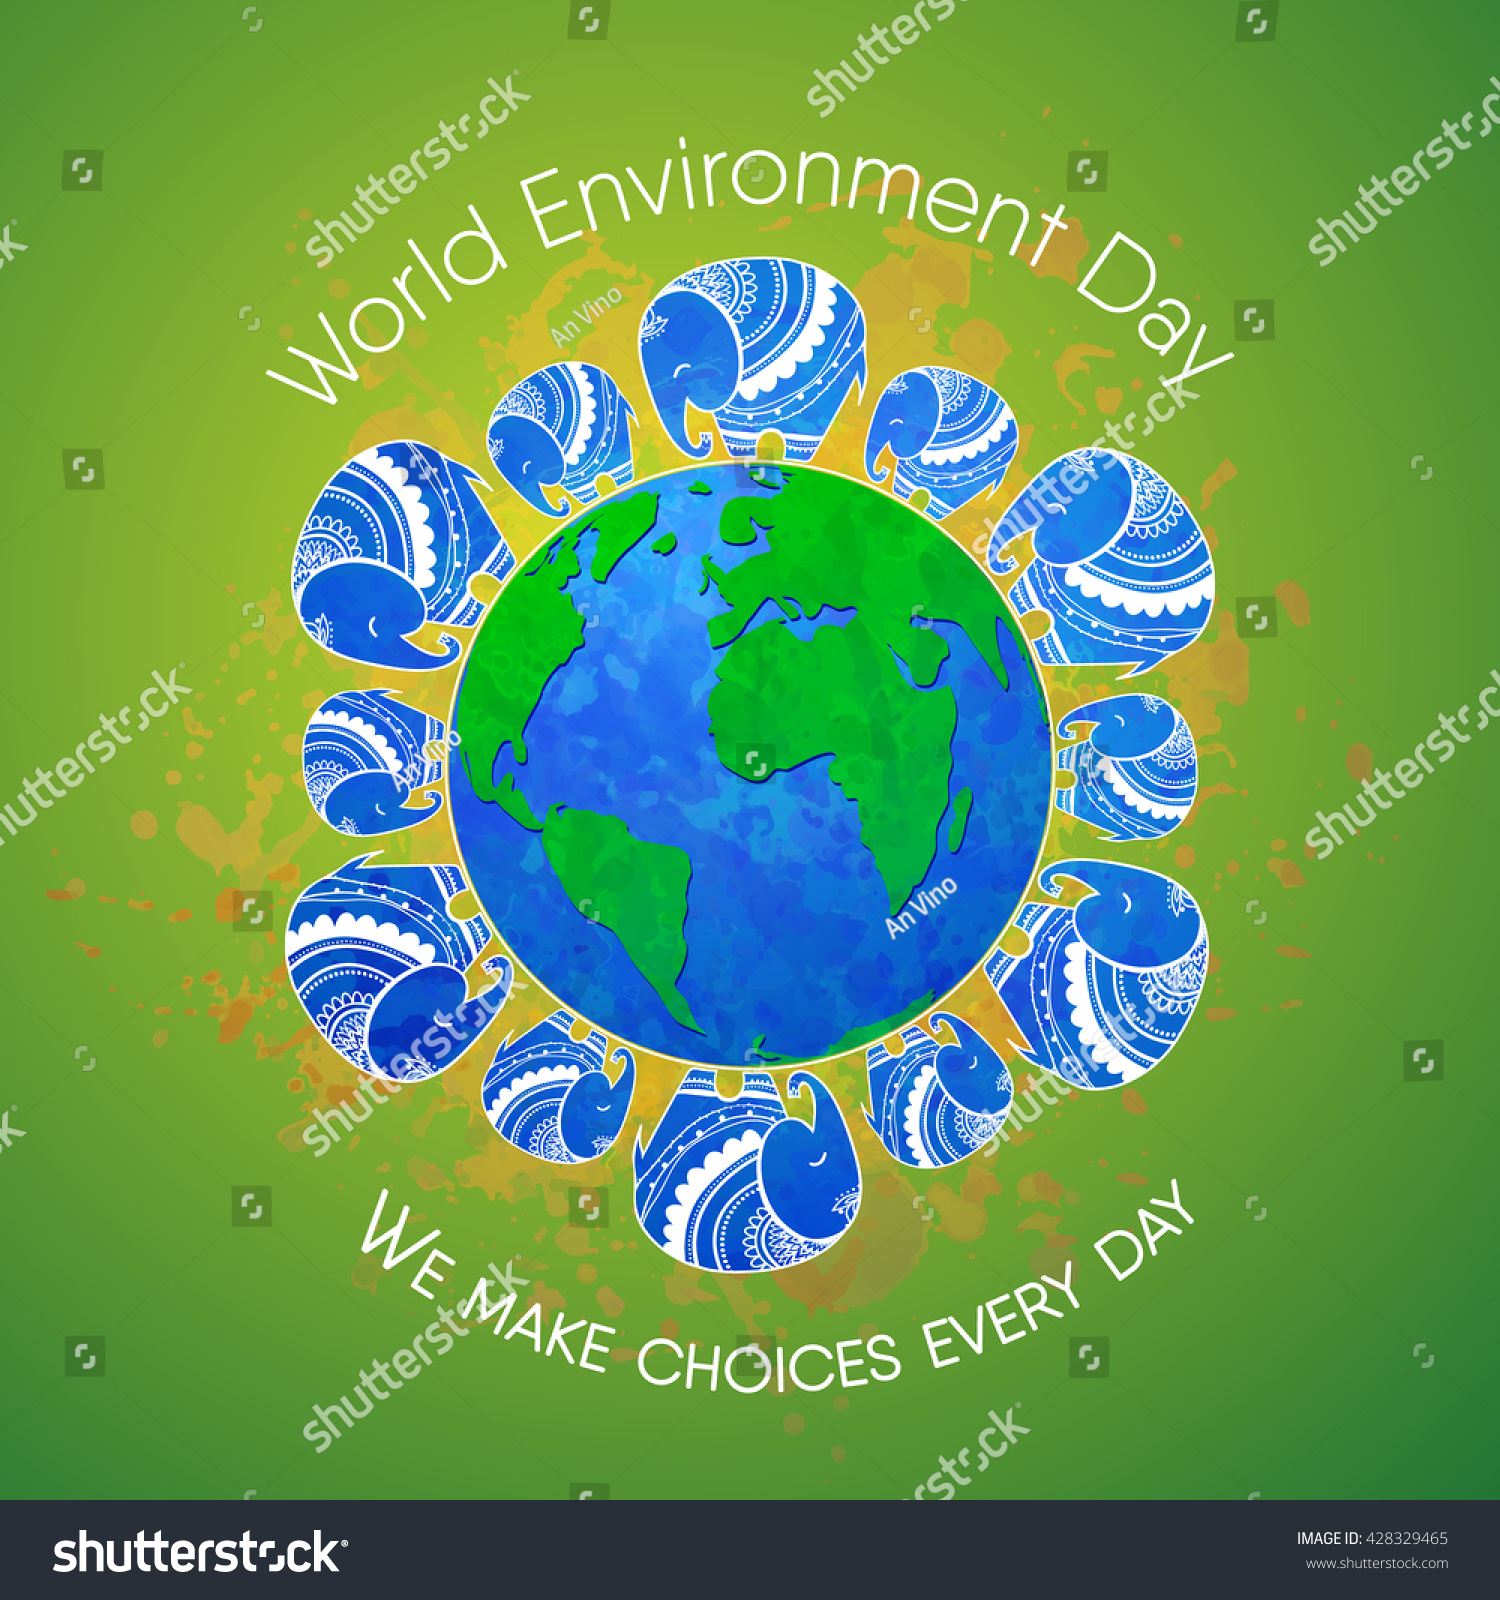 Poster design environment day - World Environment Day Concept Design For Banner Print Poster Greeting Card